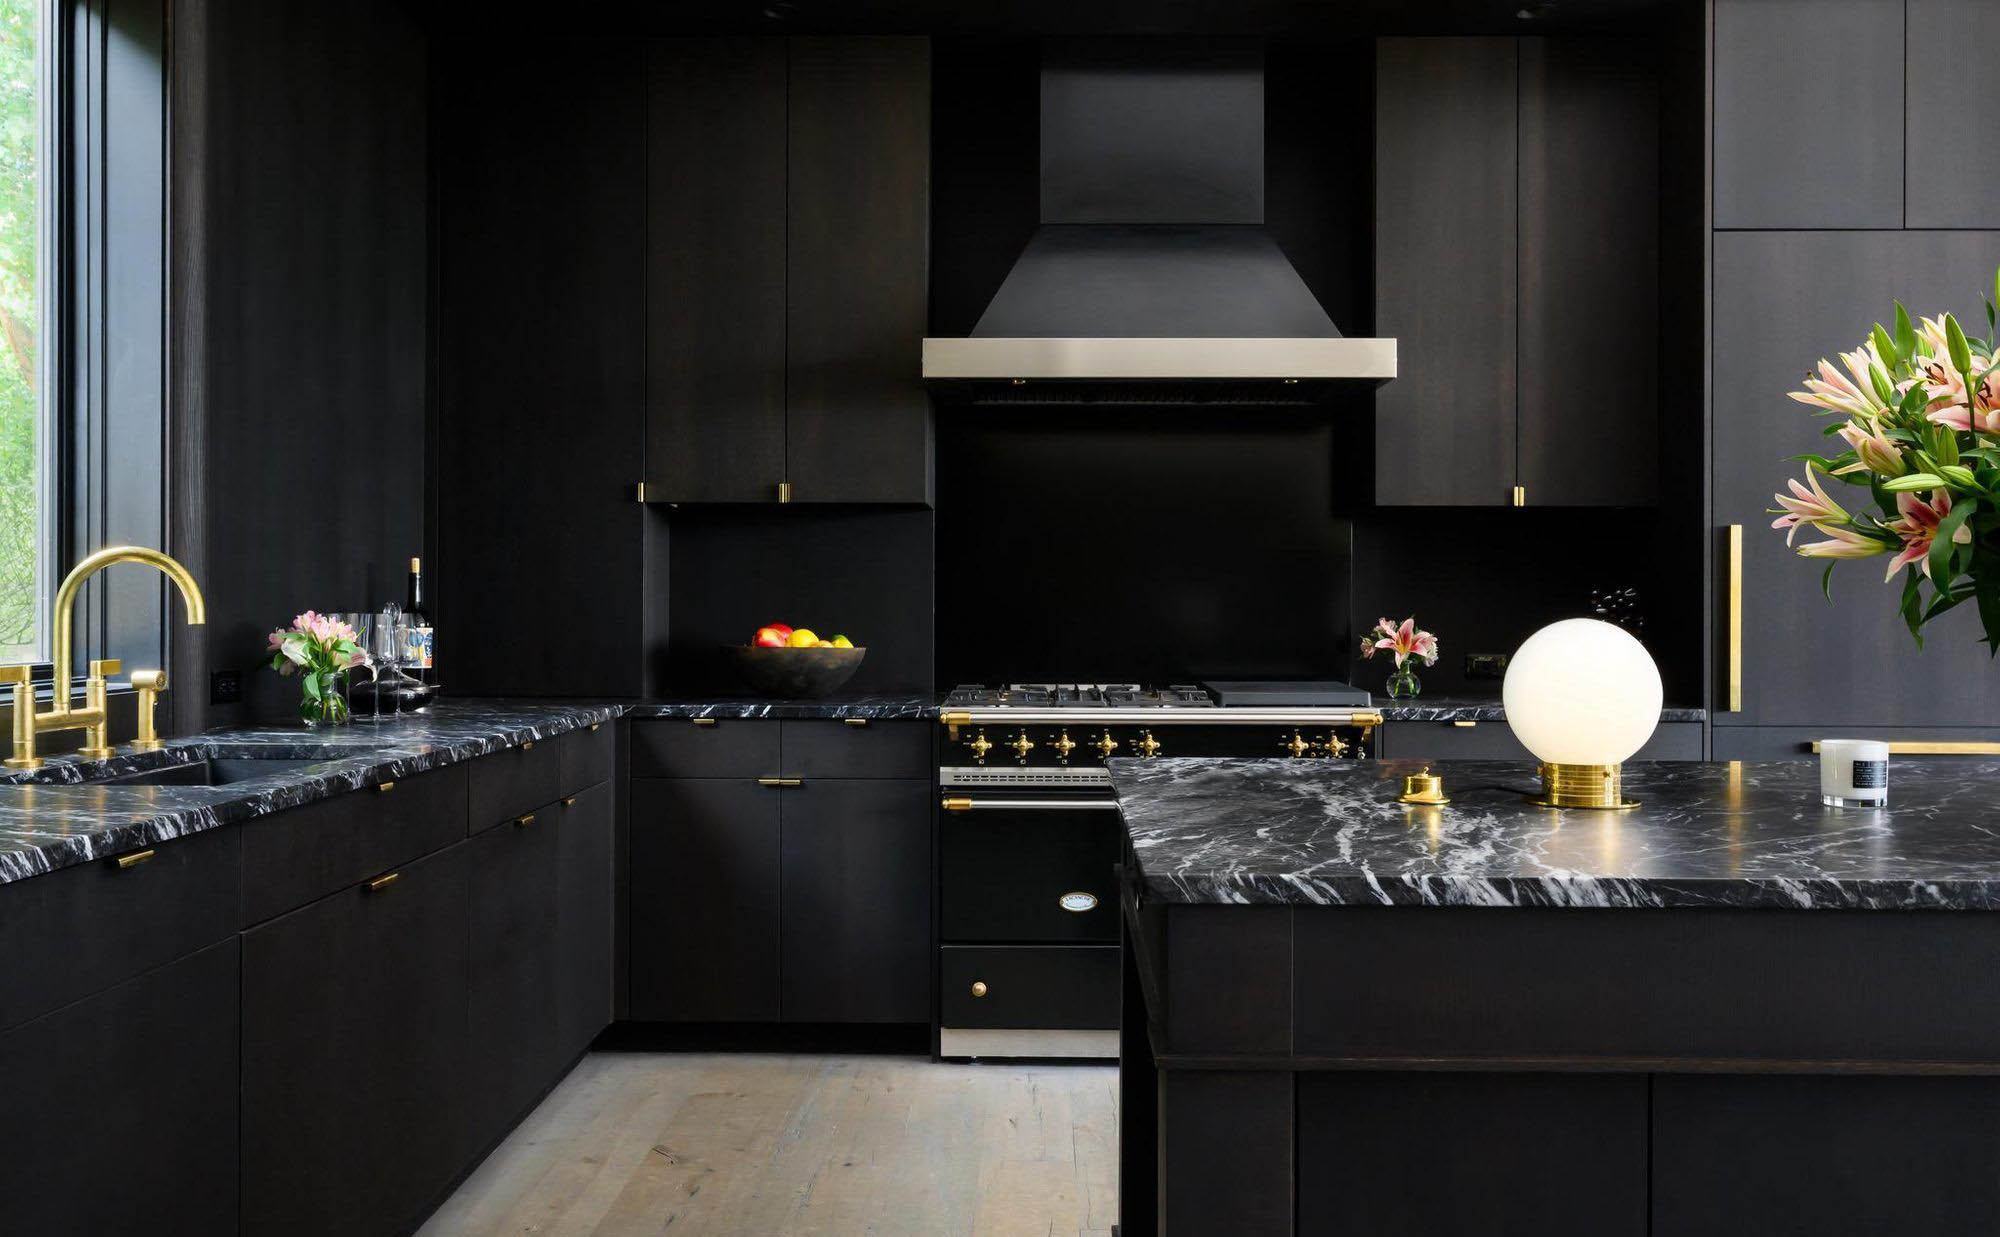 Ultra modern black and white kitchen design with Agatha black granite countertops, black cabinets and backsplash.